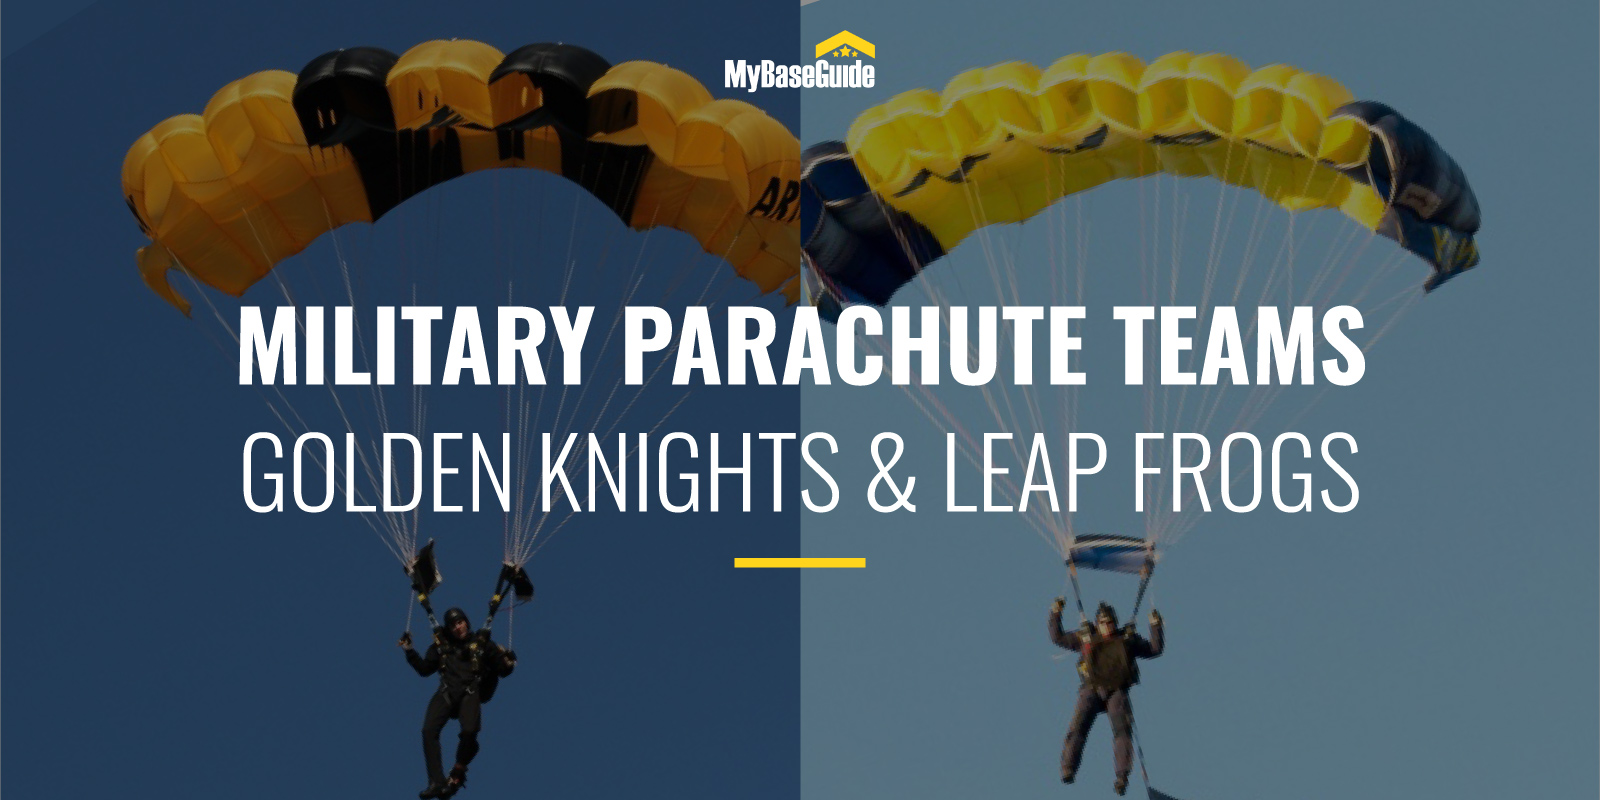 Return-of-the-Military-Parachute-Teams-Golden-Knights-Leap-Frogs